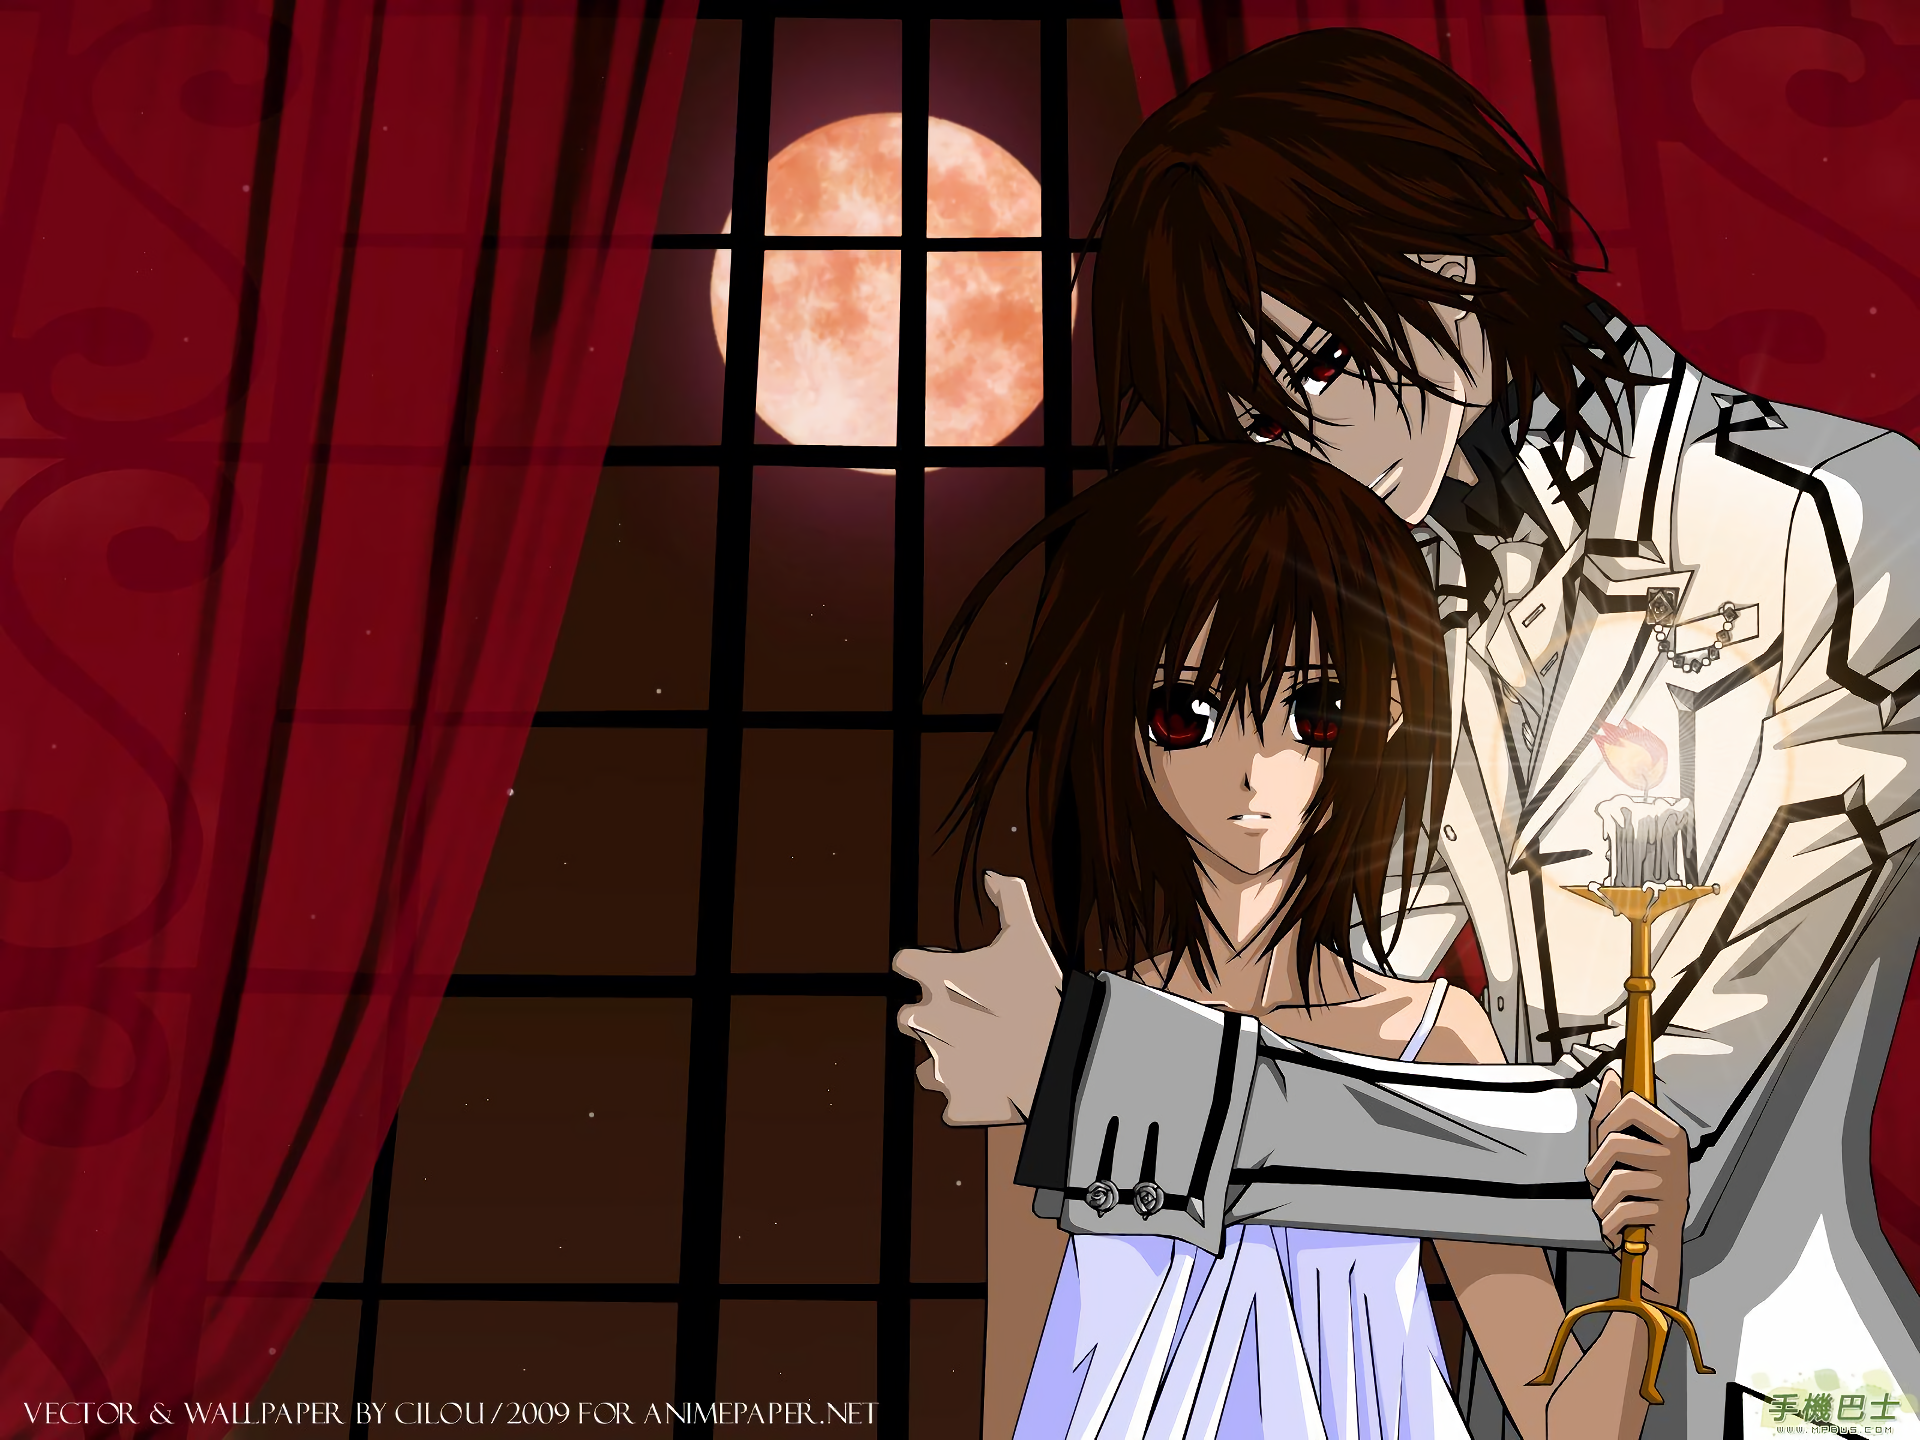 Vampire knight hd wallpaper background image 1920x1440 - Vampire knight anime wallpaper ...